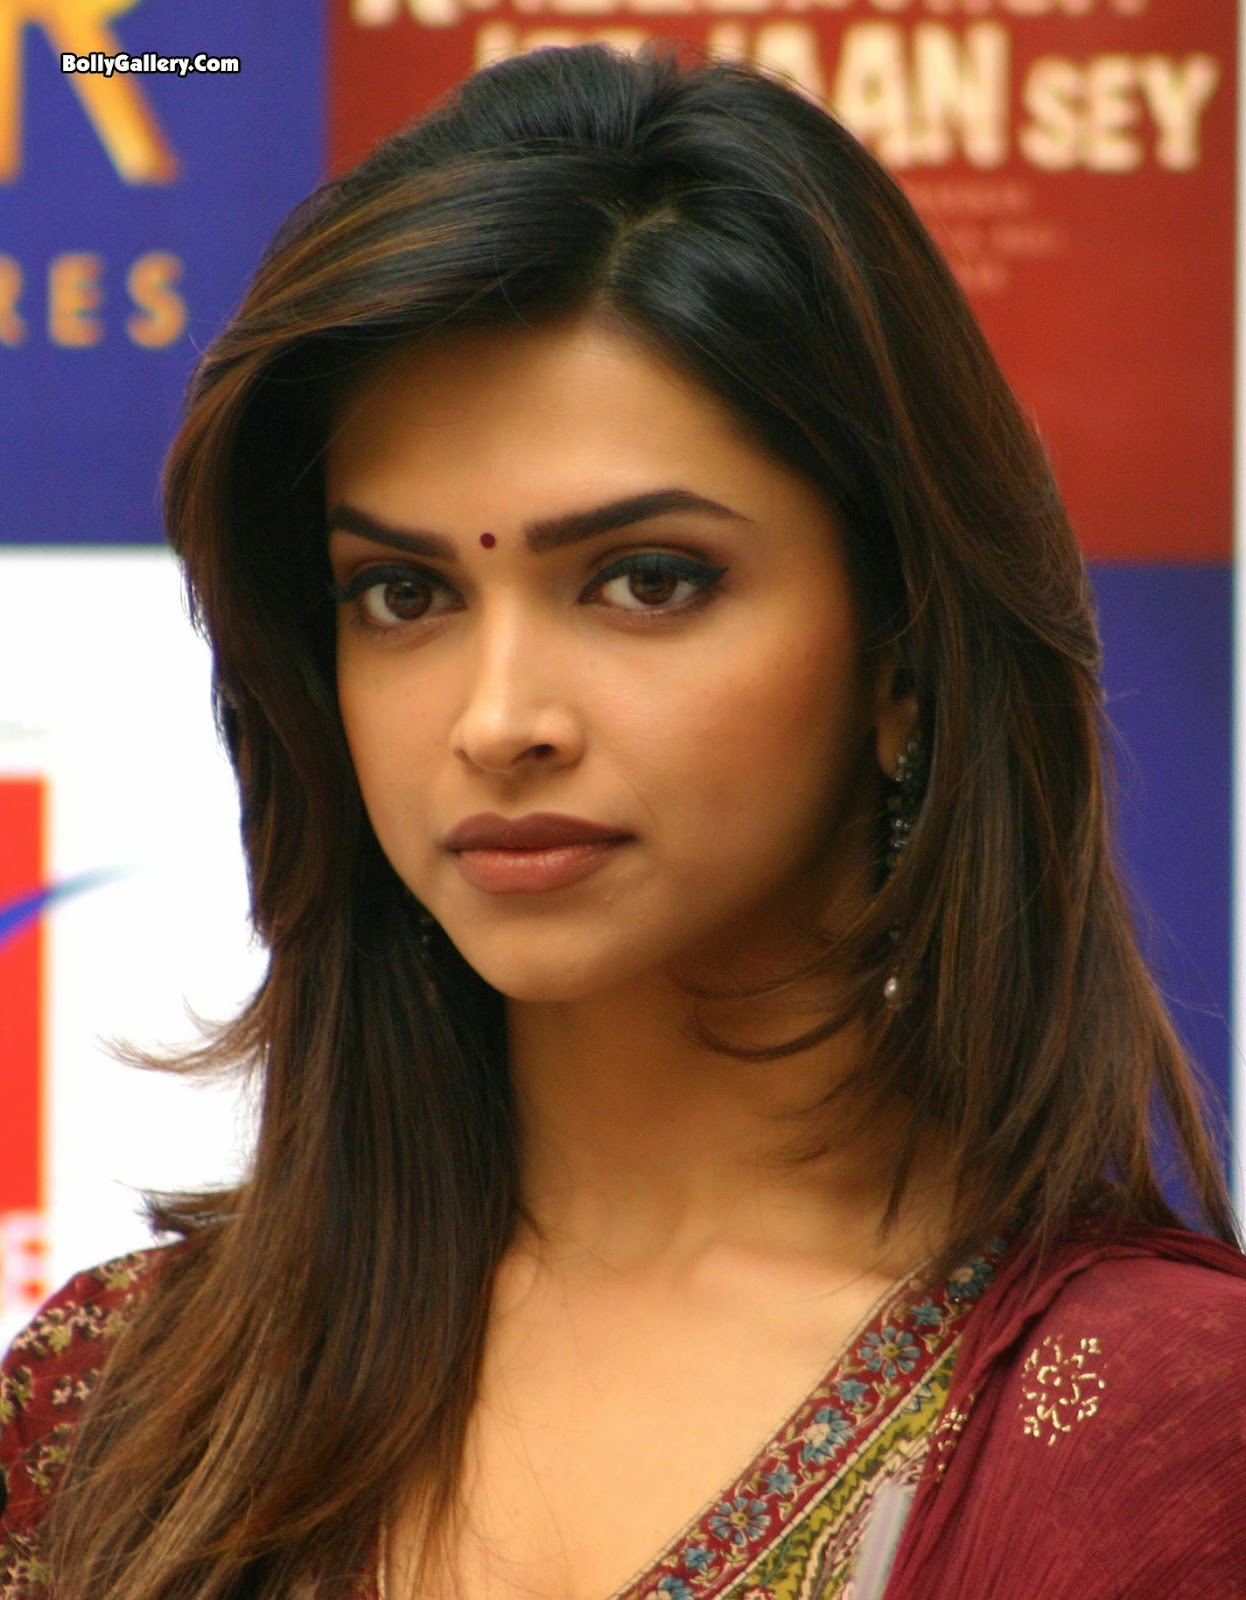 Deepika Padukone Hot Wallpaper Bikini In Saree Hot In